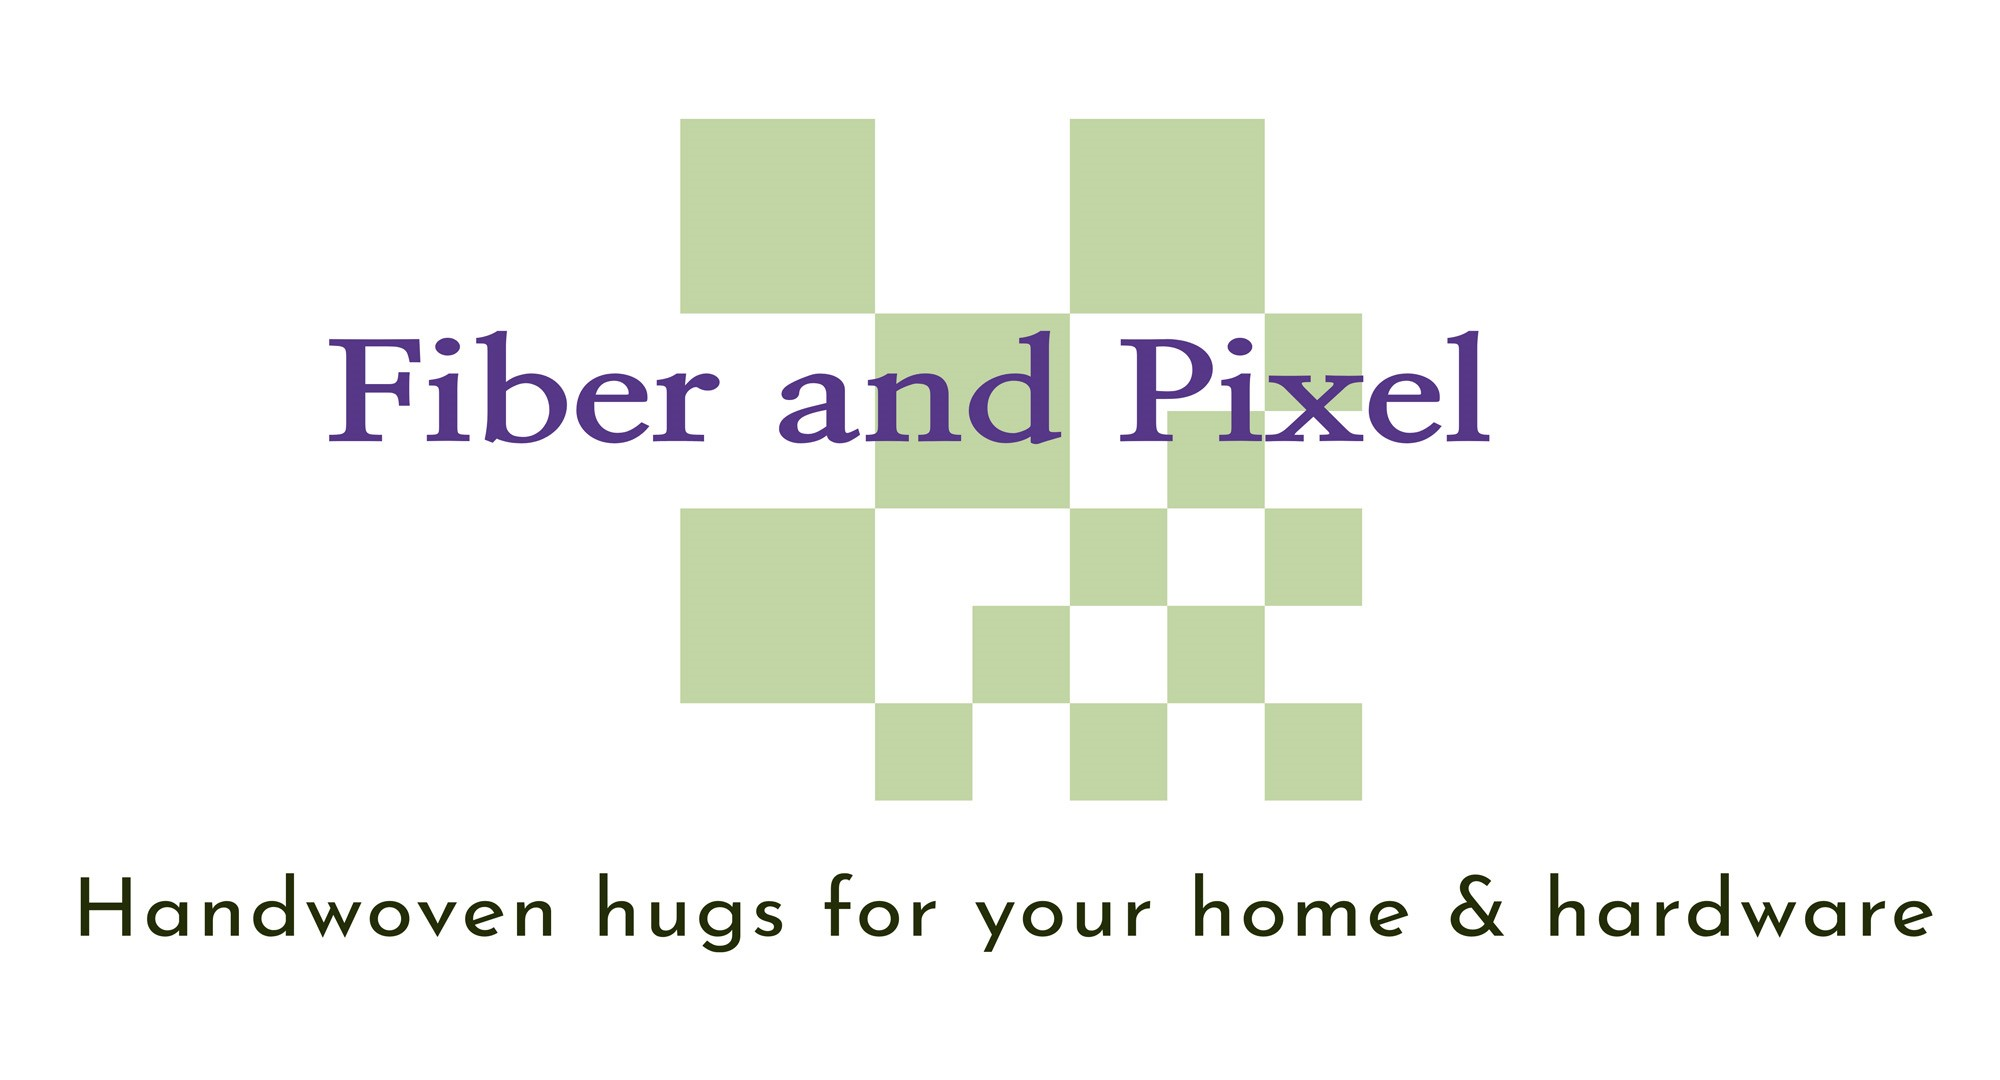 Fiber and Pixel